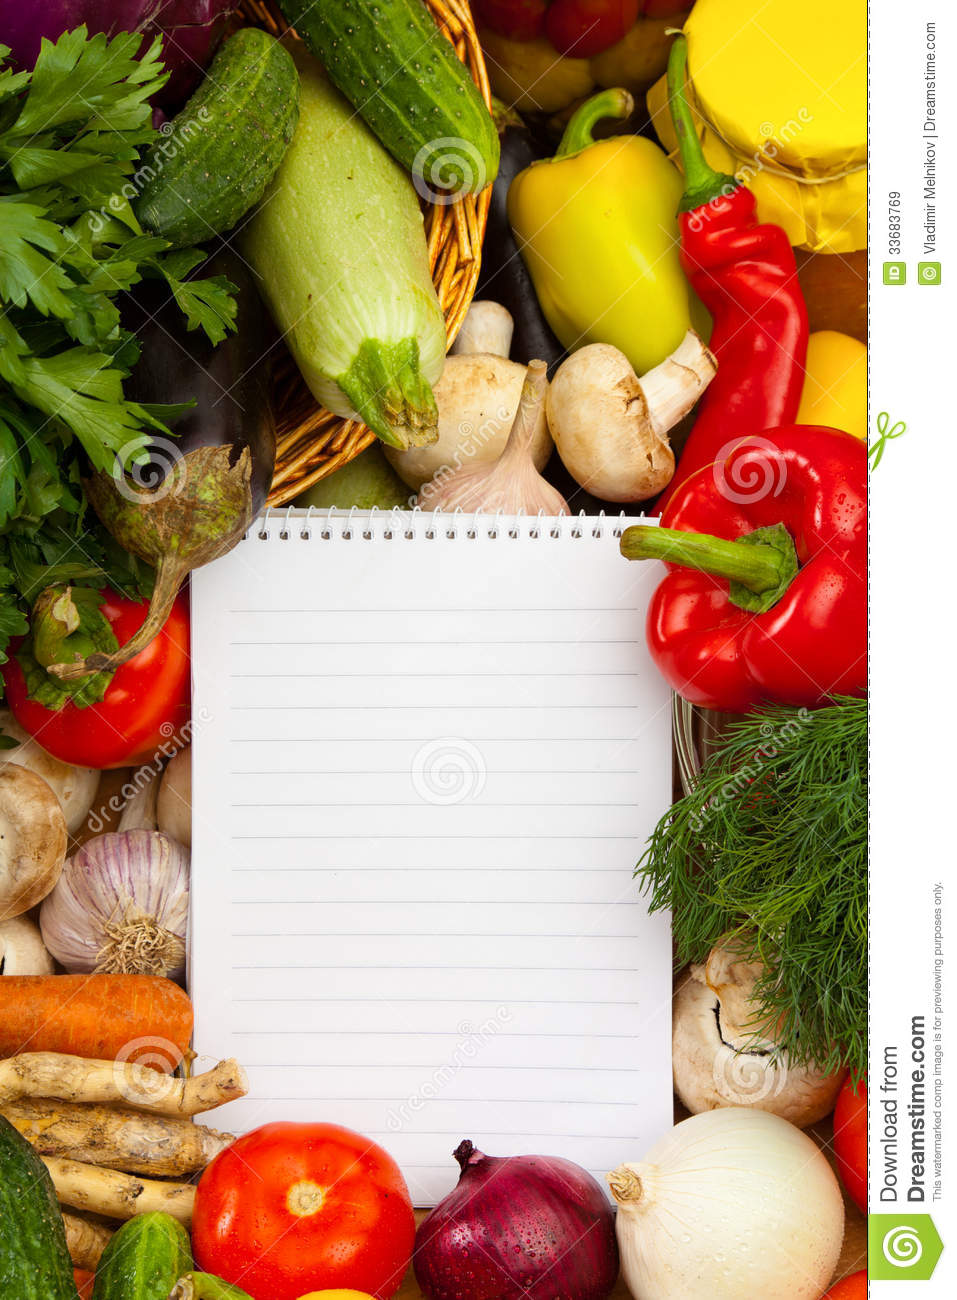 Notebook Paper To Write Recipes And Vegetables Stock Image